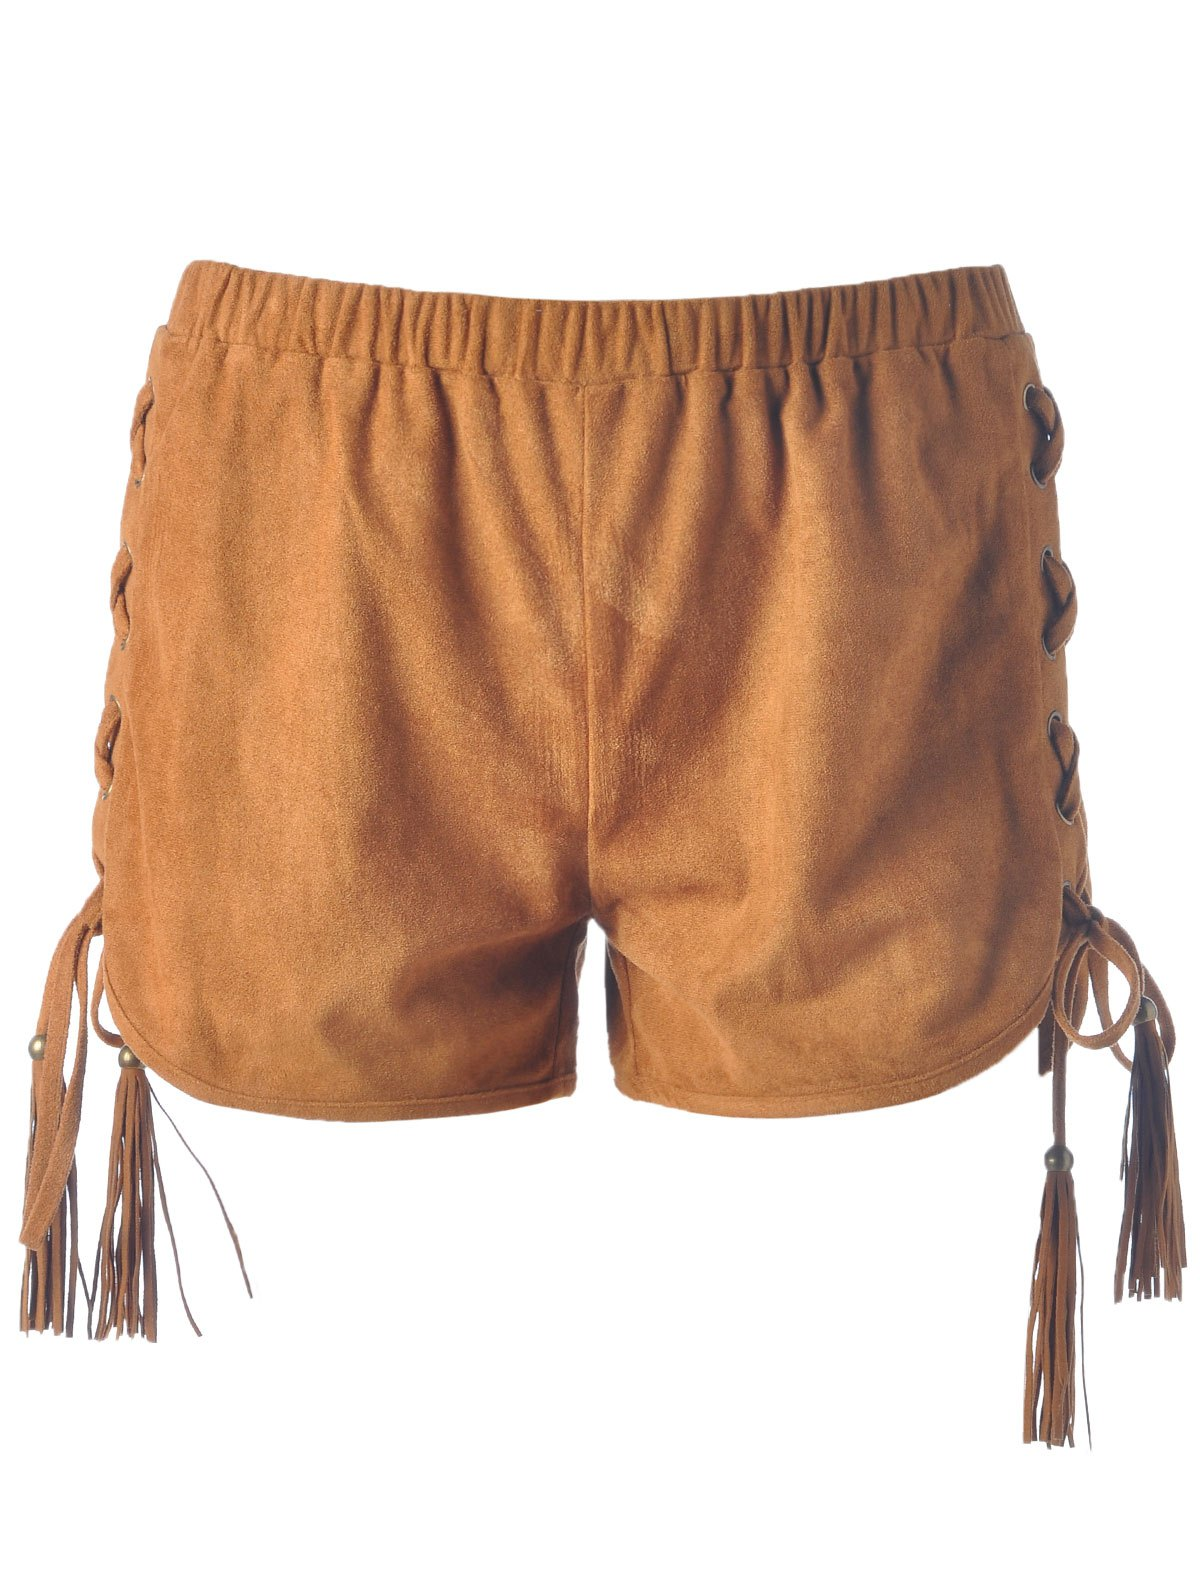 Stylish Lace-Up Pure Color Shorts For Women - CAMEL S